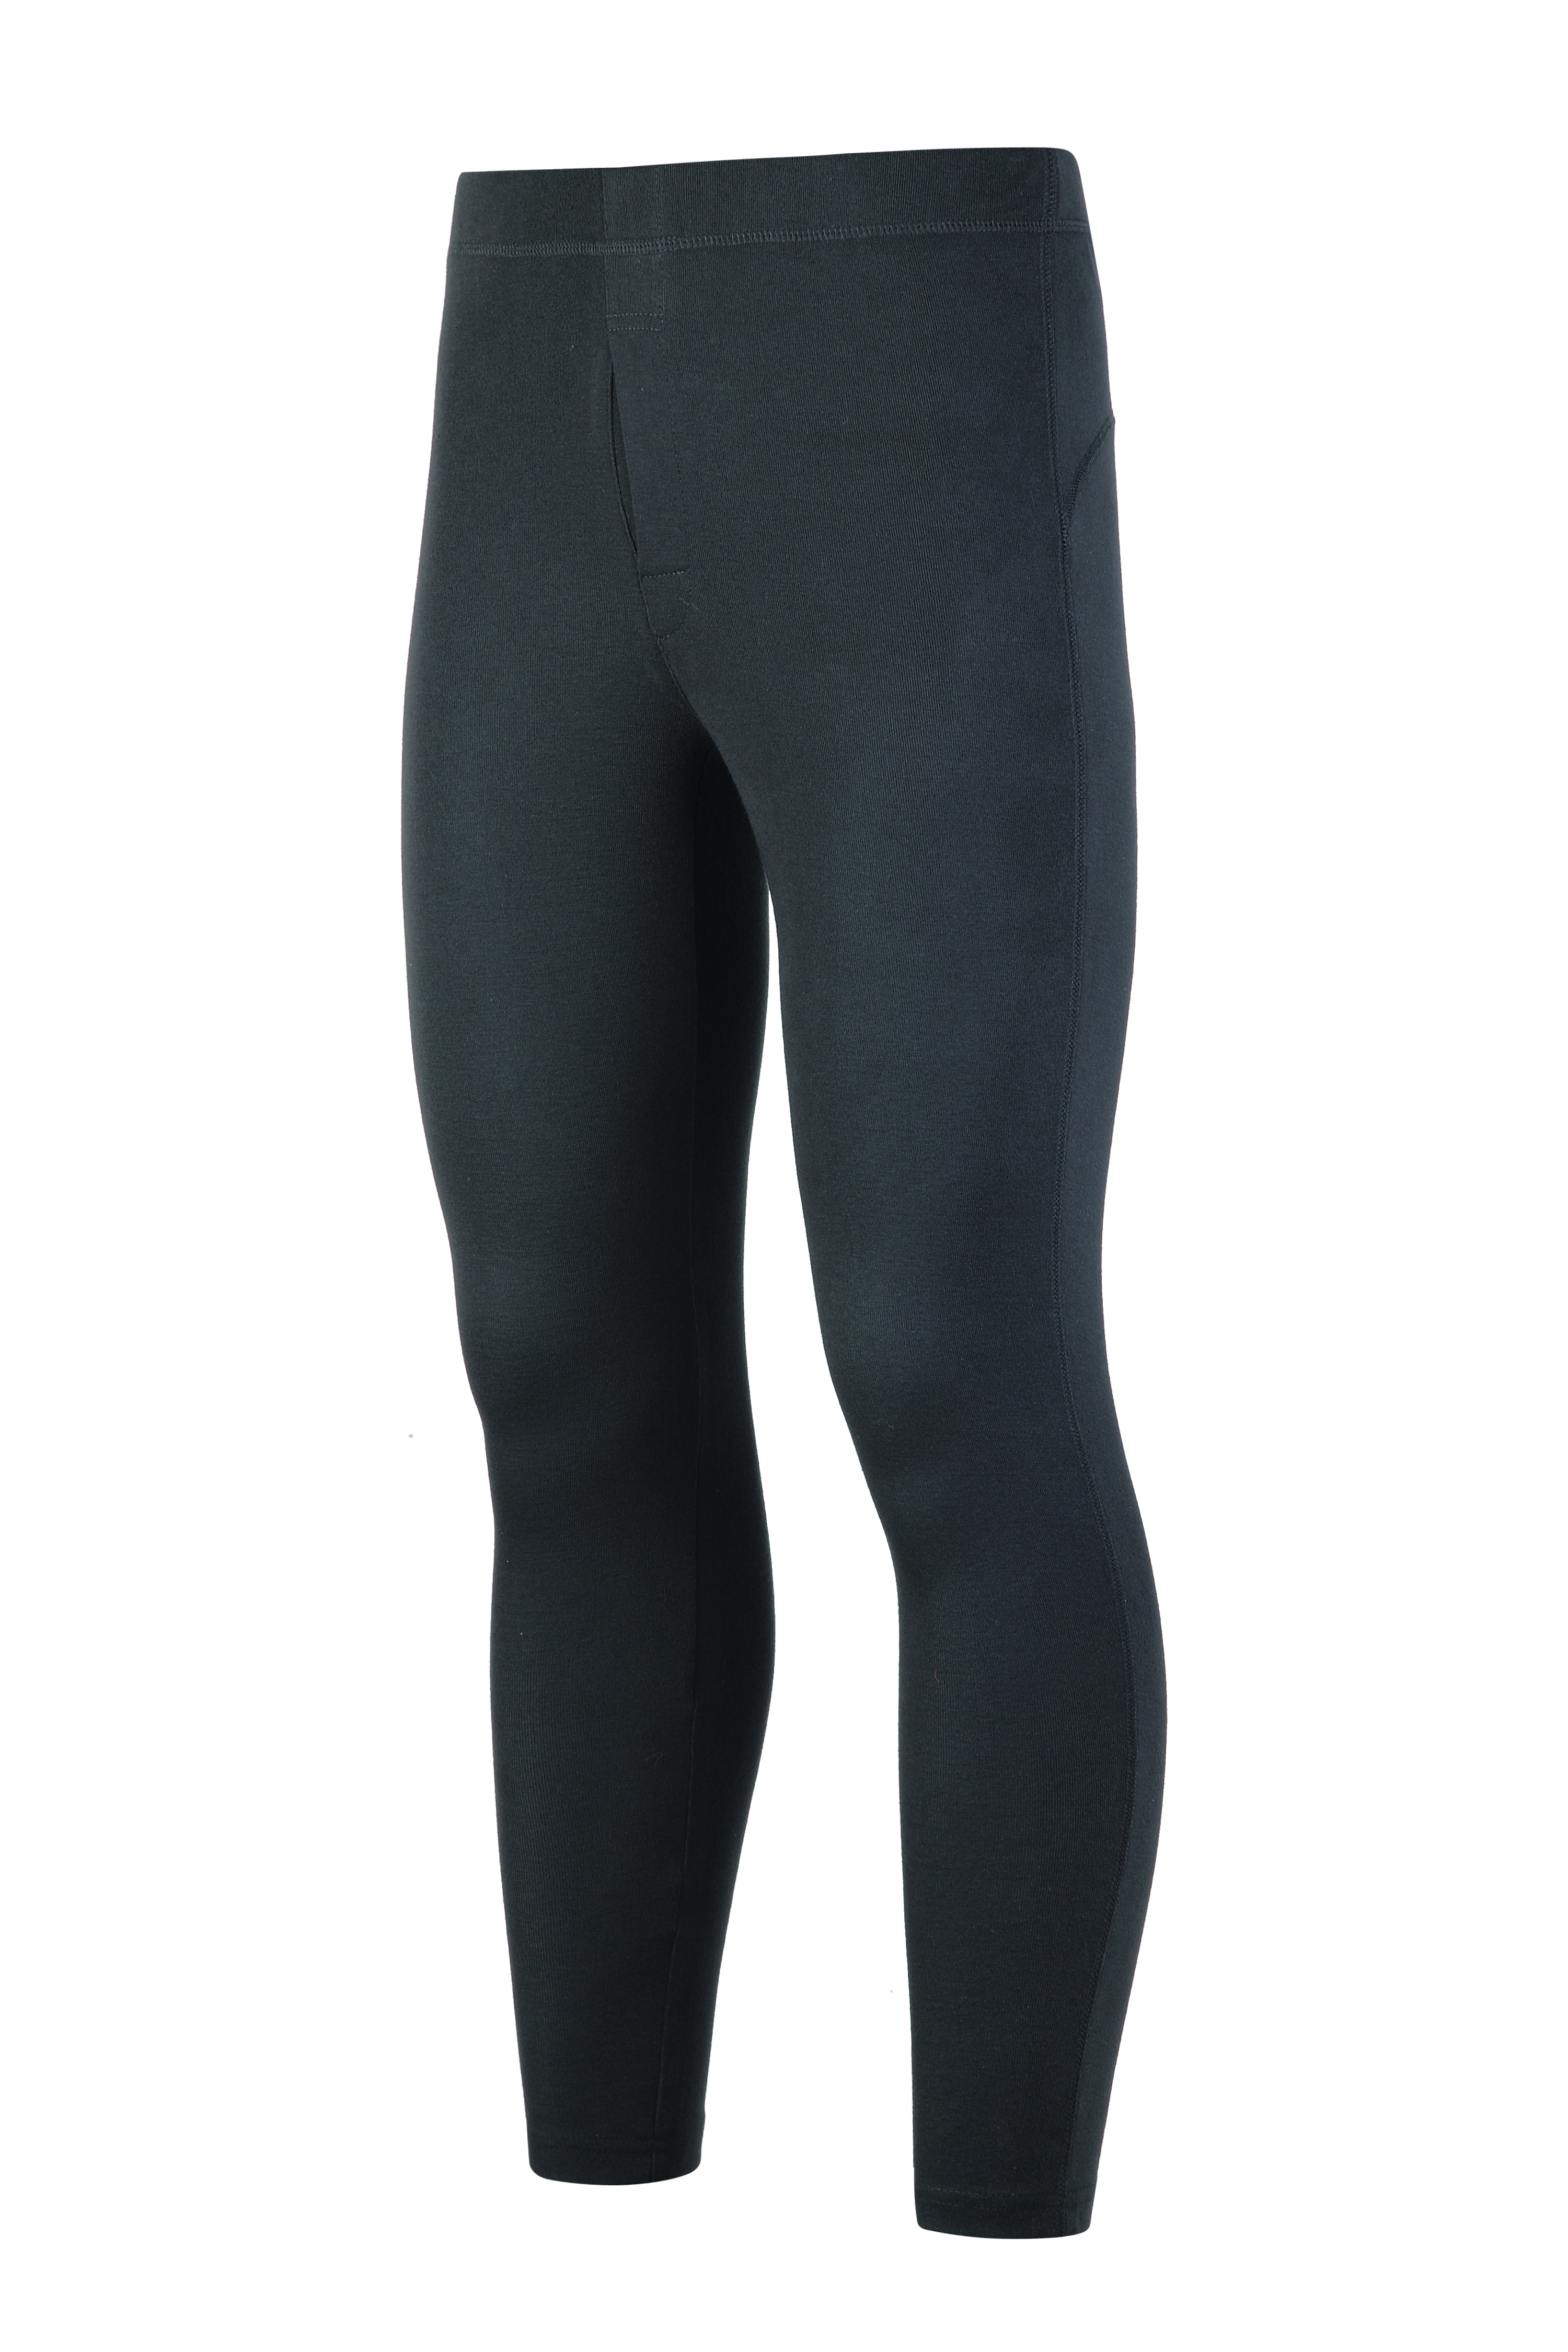 Men's knitted compression pants.